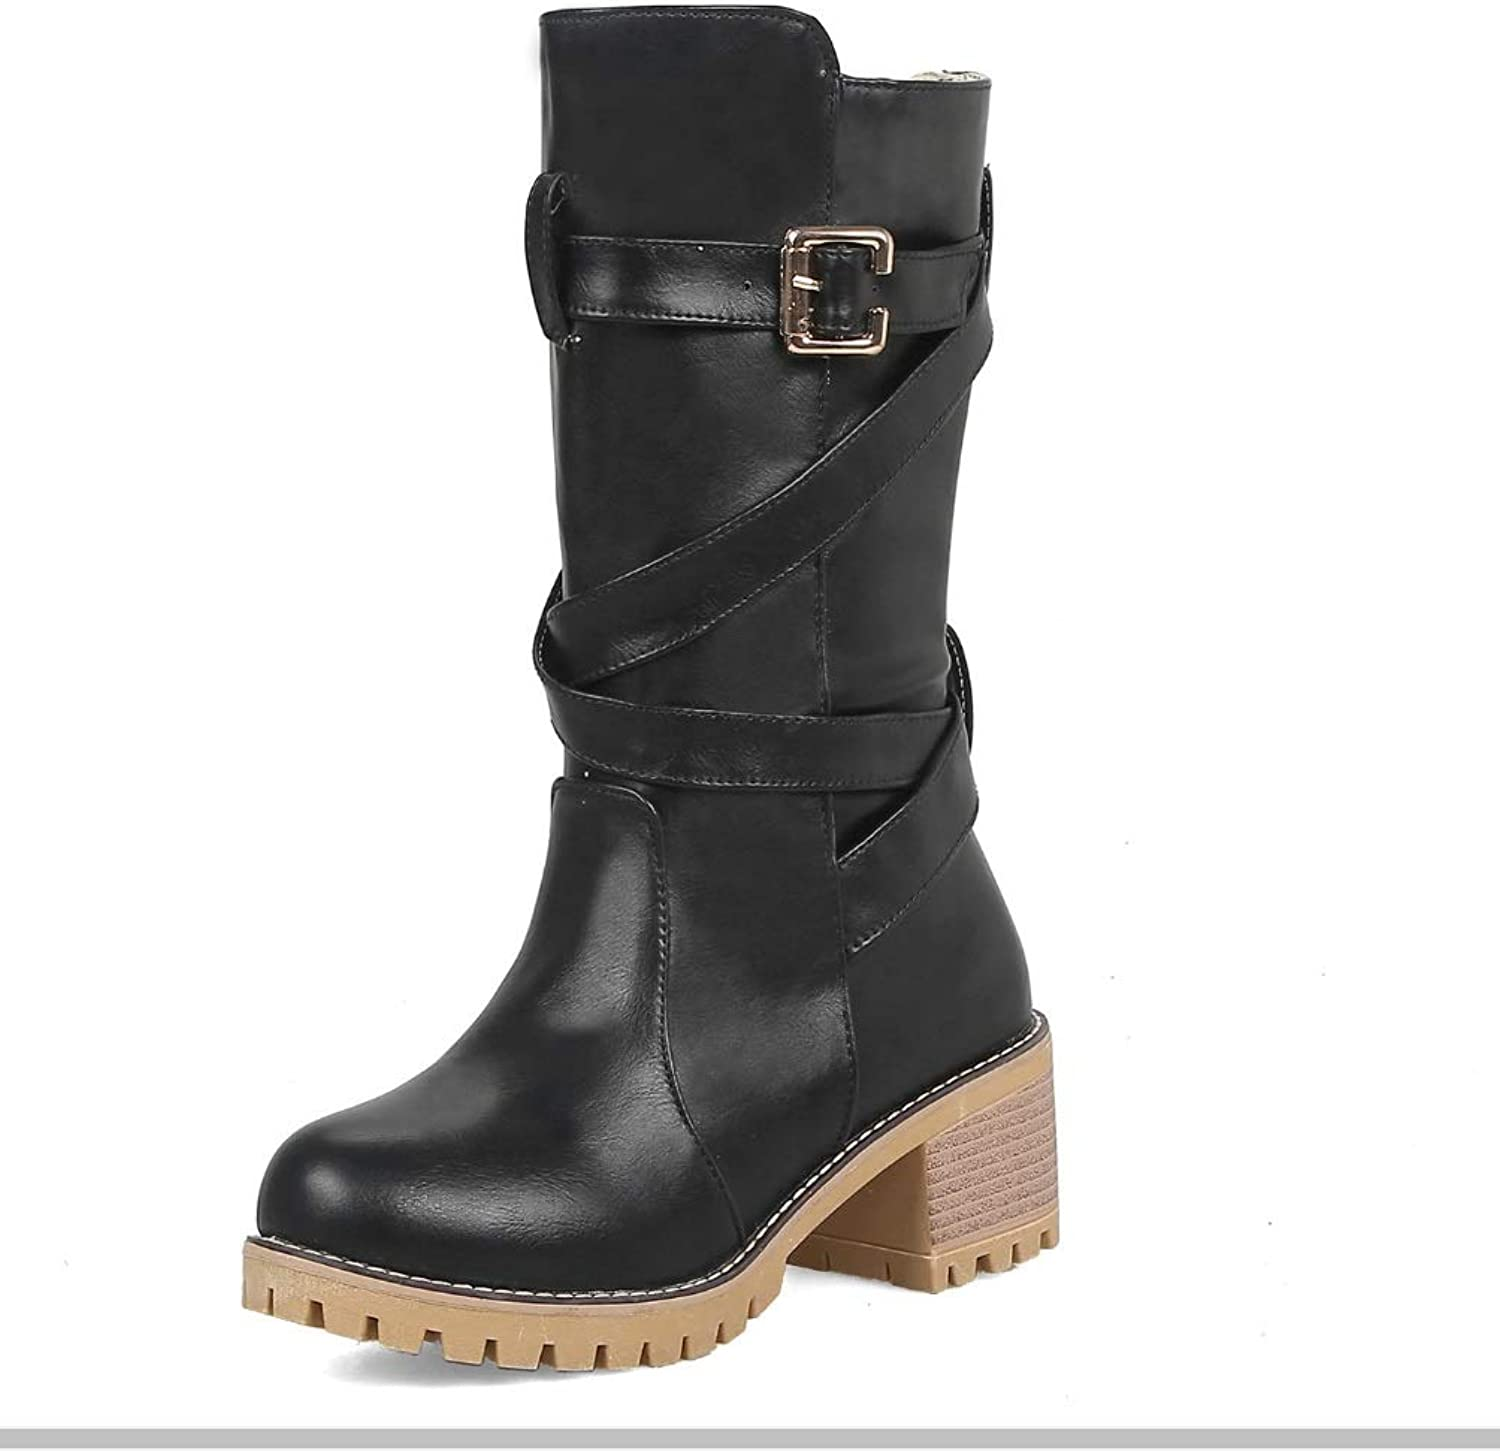 Other Womens Army Combat Boots Grip Sole Biker Calf BootsWork High Top Desert Lace Up Rubber Boots shoes Best Choice for Daily Wear Size